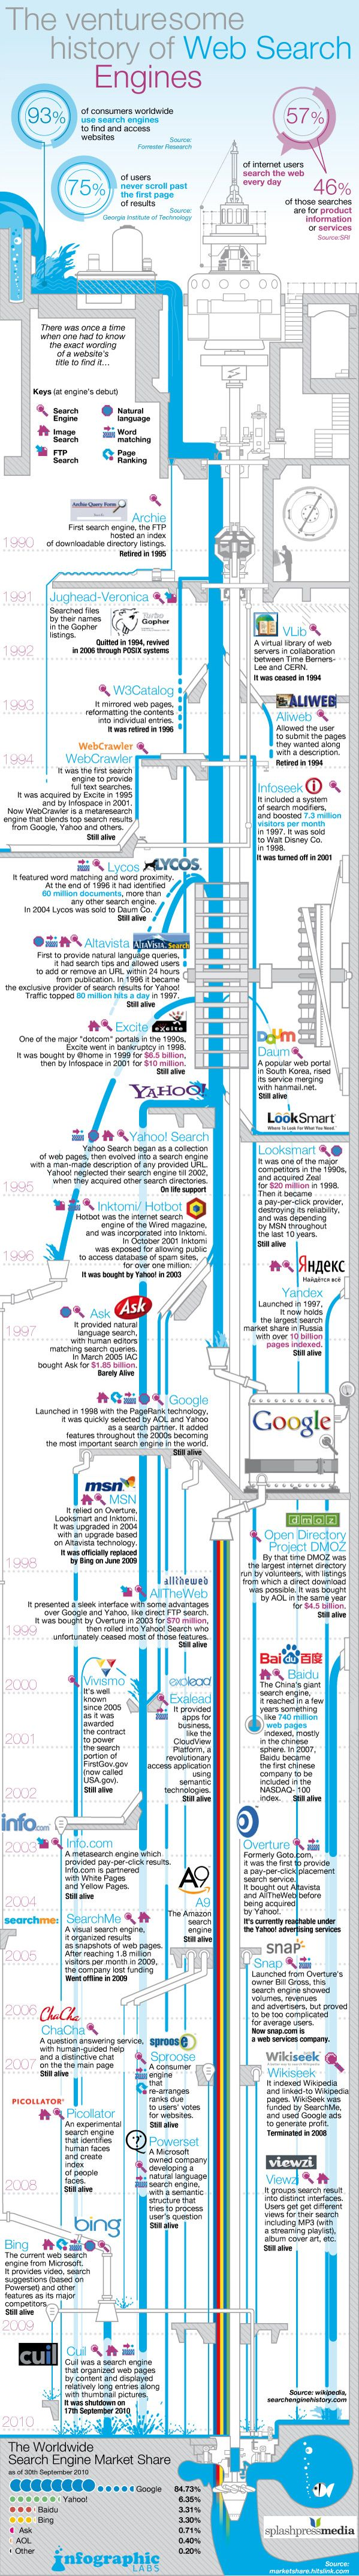 History of Web Search Engines